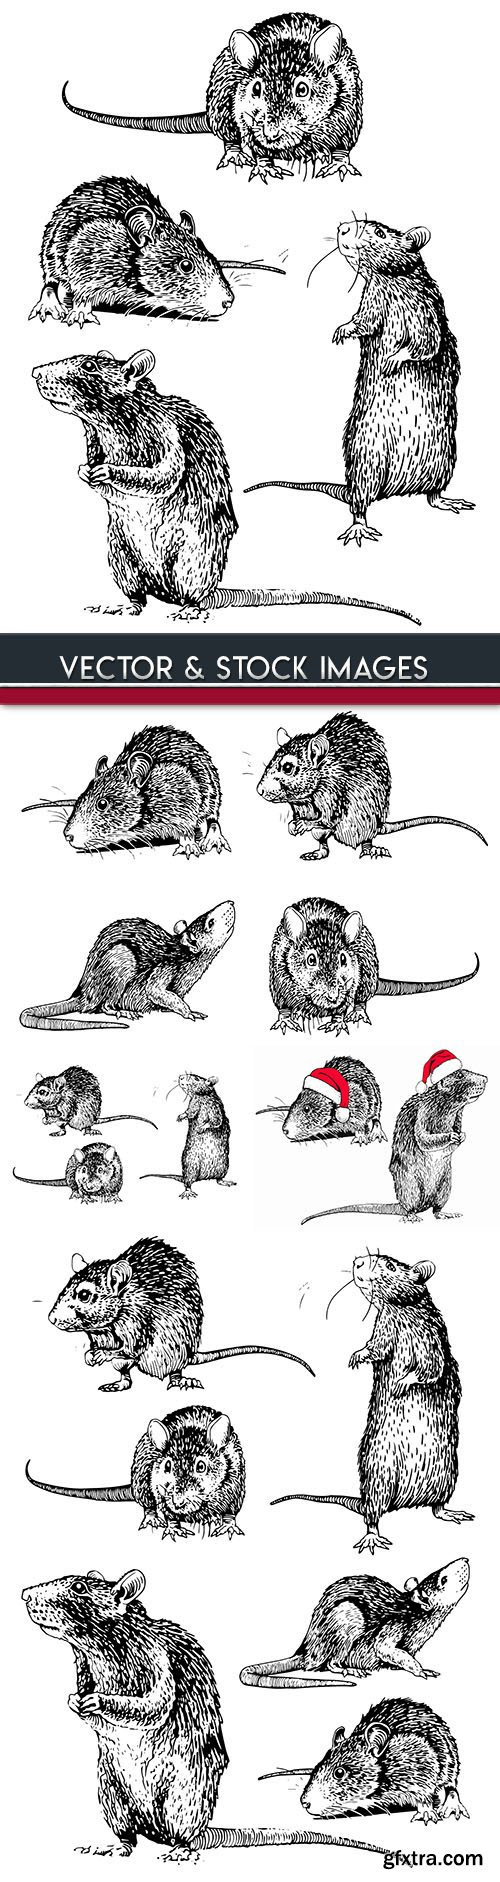 Mouse drawn illustrations symbol new Years